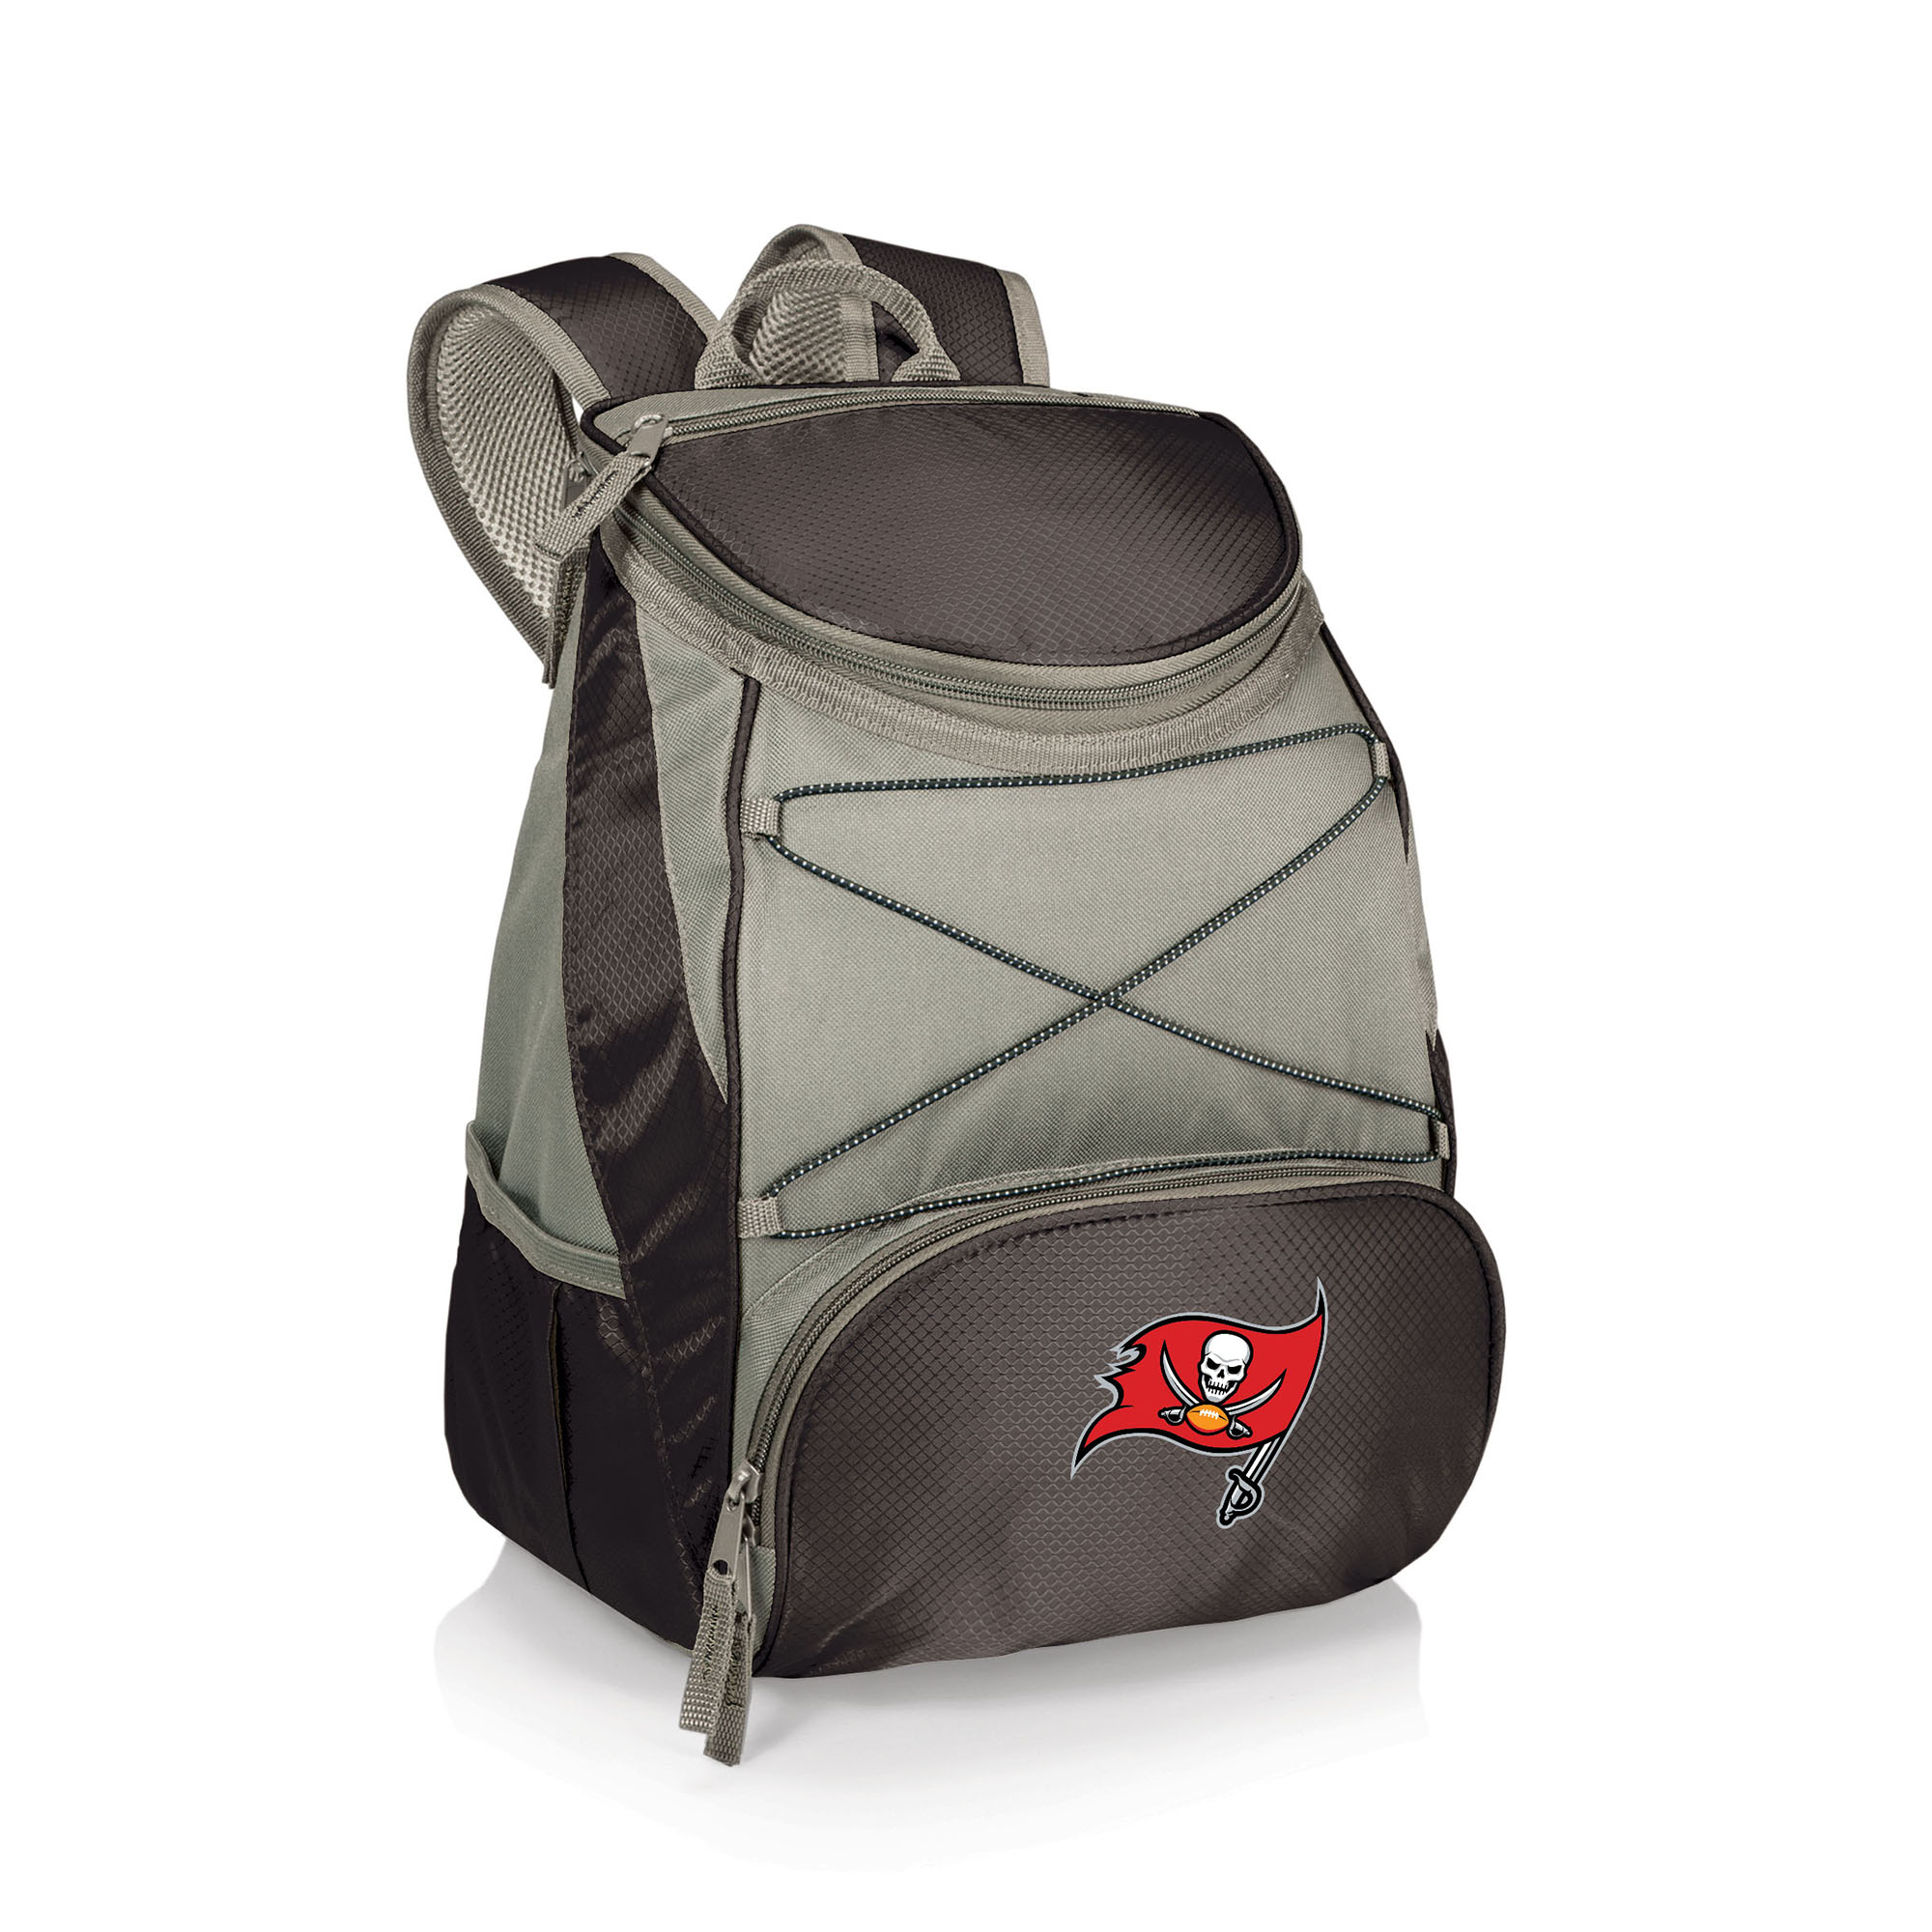 Tampa Bay Buccaneers PTX Backpack Cooler - Black - No Size